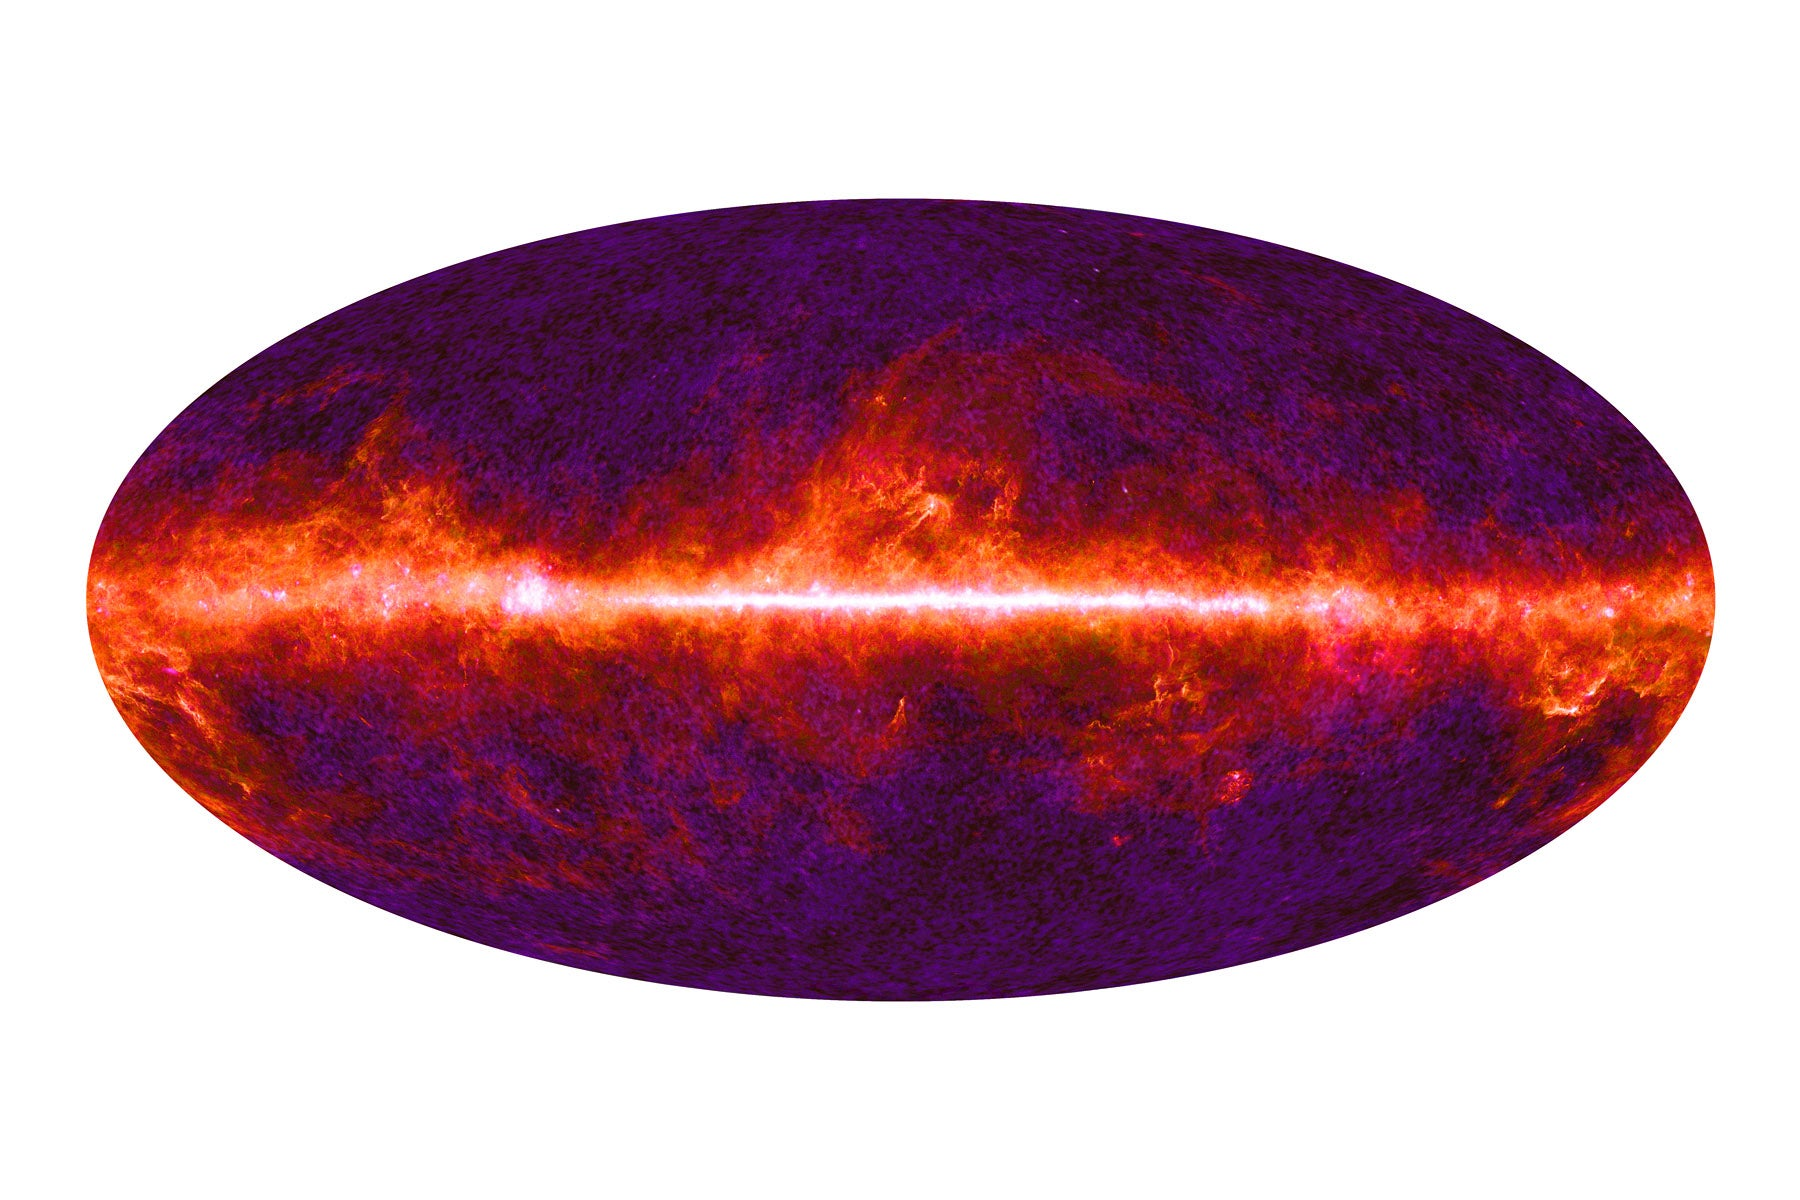 Big Pic: The Universe Reimagined As A Fiery Egg